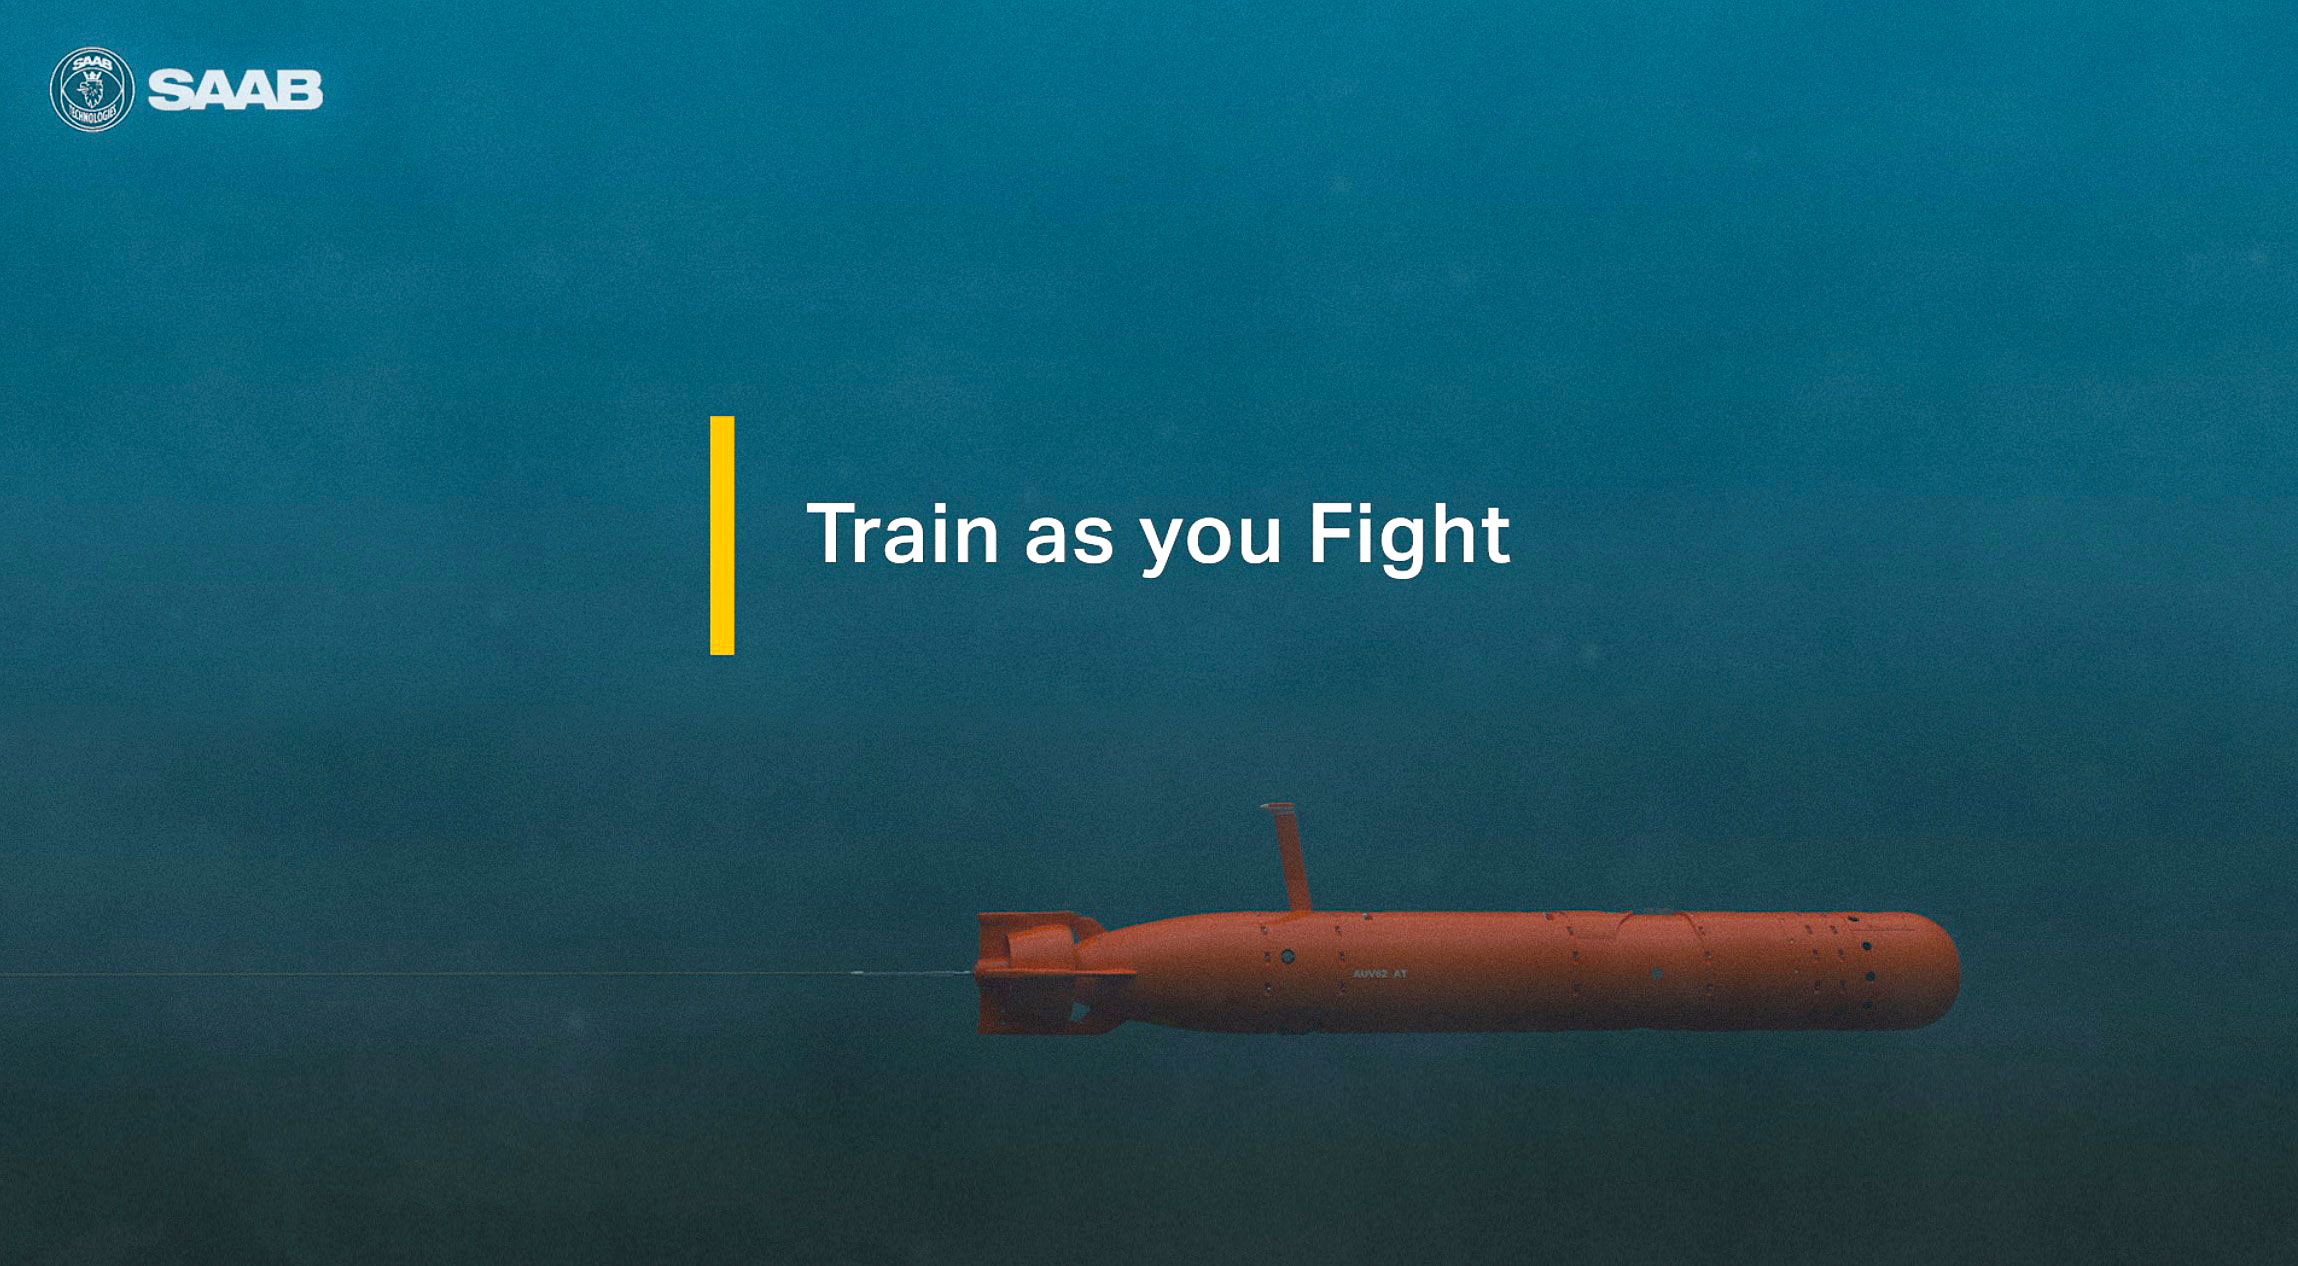 SAAB AUV62-AT – Train as you fight